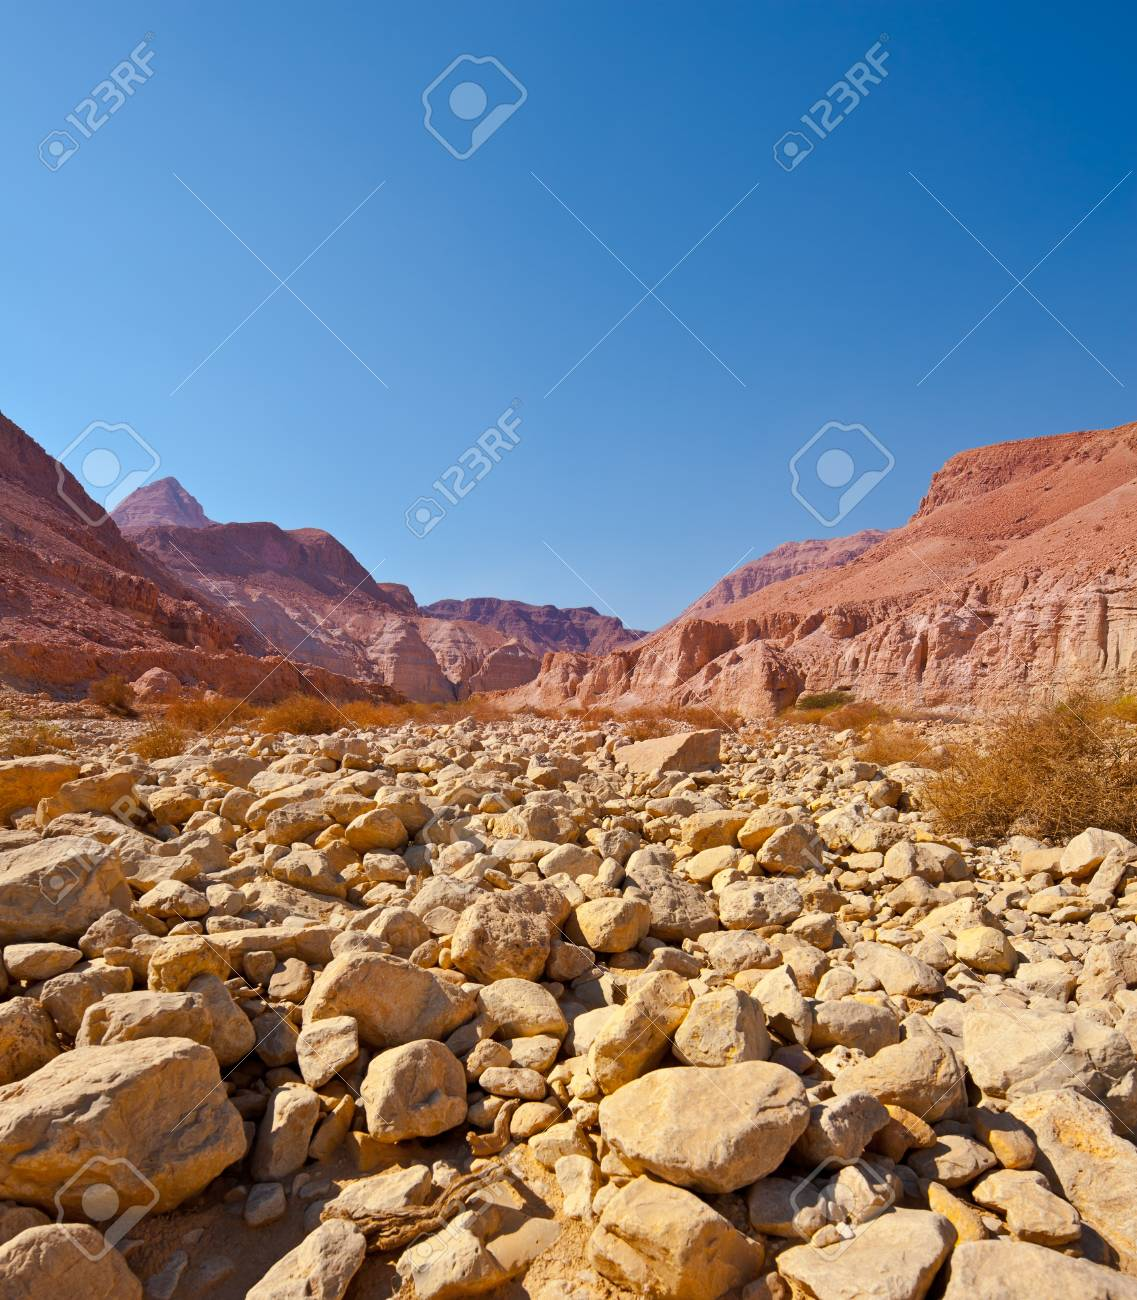 Dry Riverbed in the Judean Desert Stock Photo - 16508364